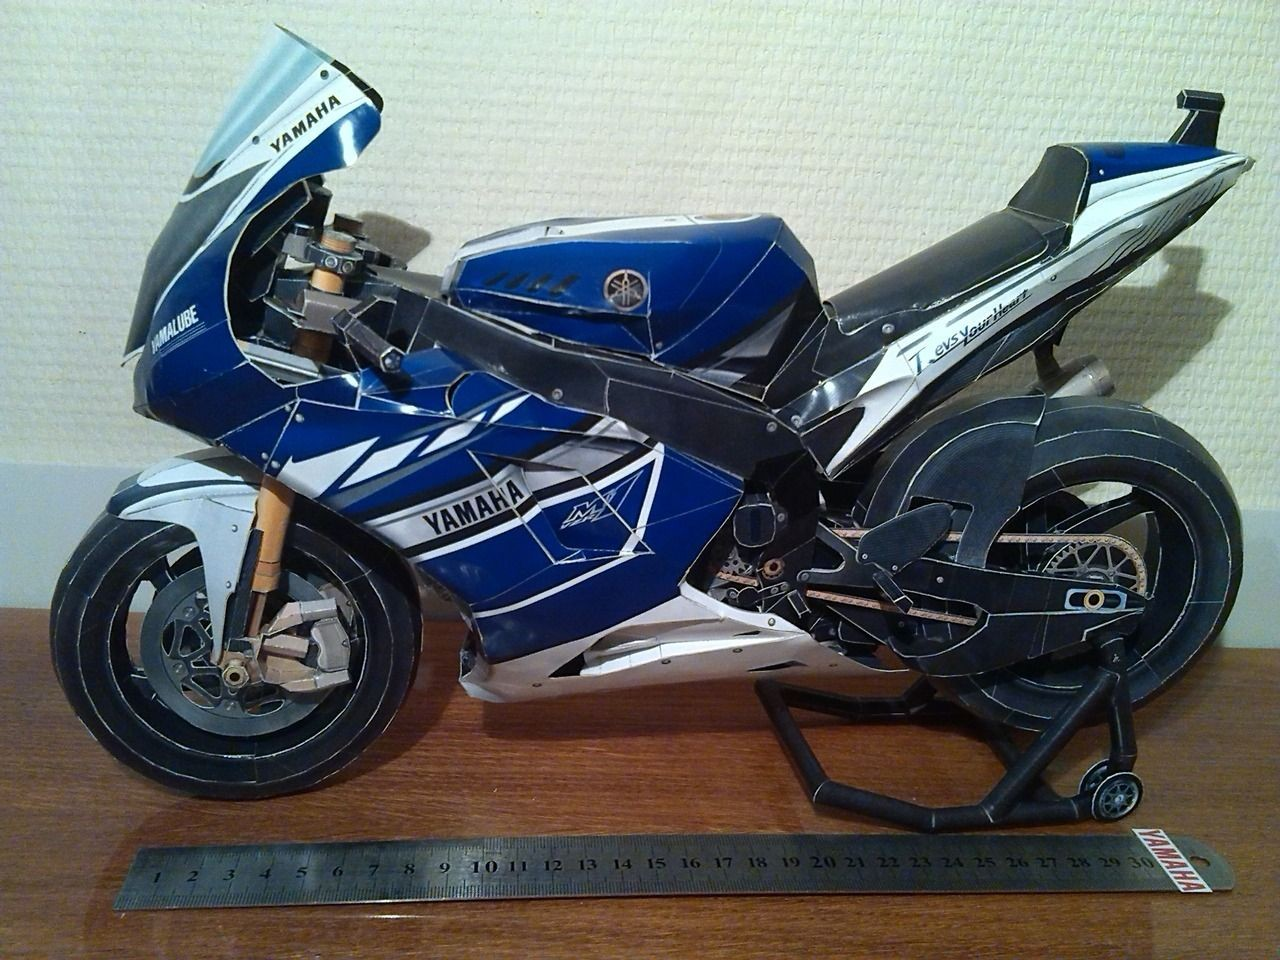 Yamaha Papercraft Motorcycle Precise Paper Craft Vol 6 Automatic Super Suport 2002 Model